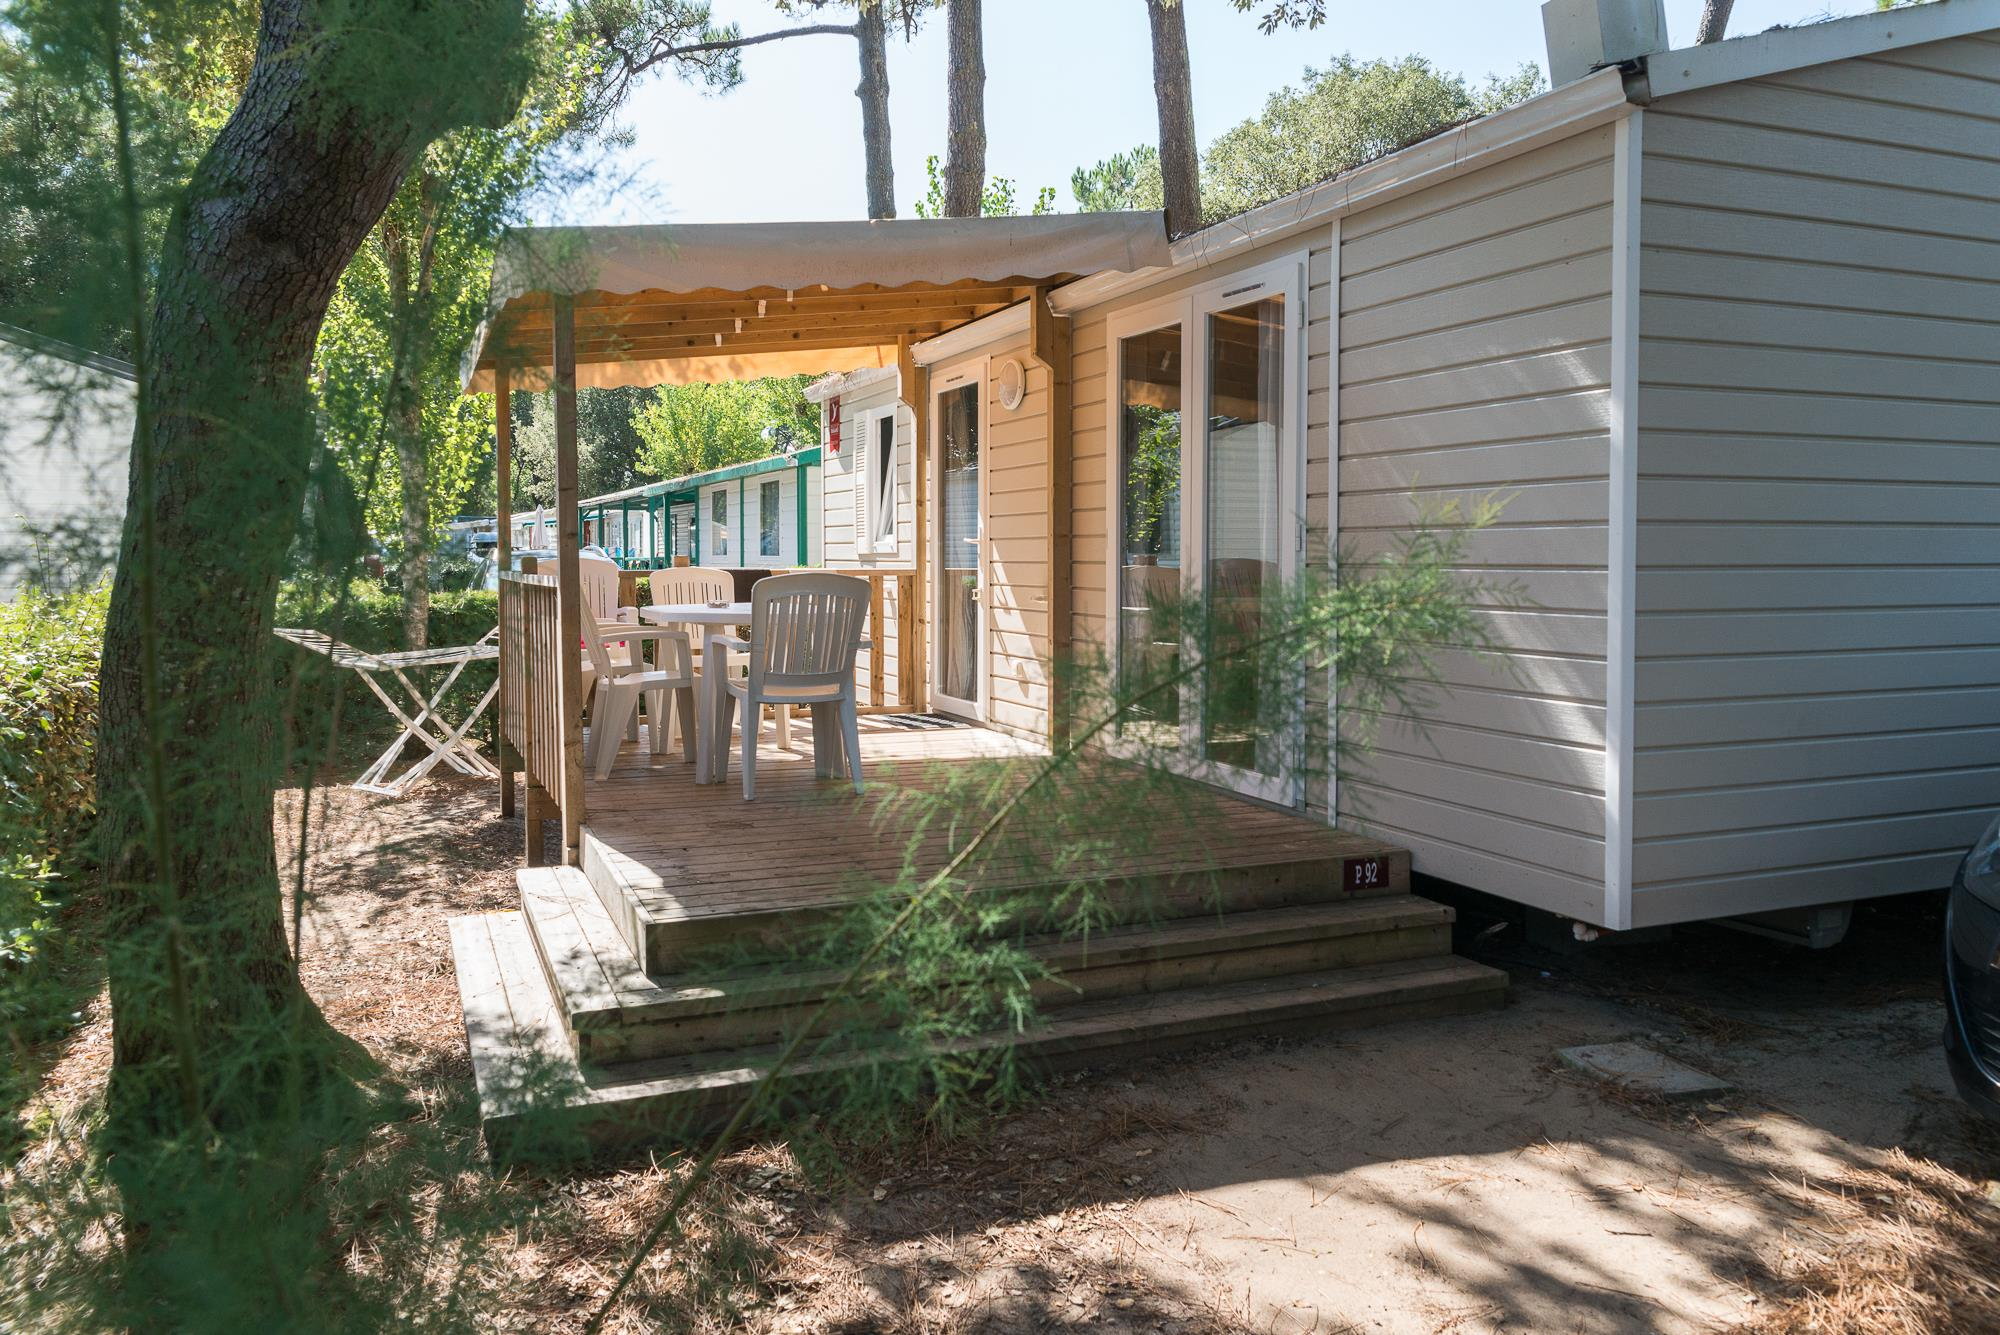 Mobile-Home Albizia 2 Bedrooms + Half-Covered Terrace